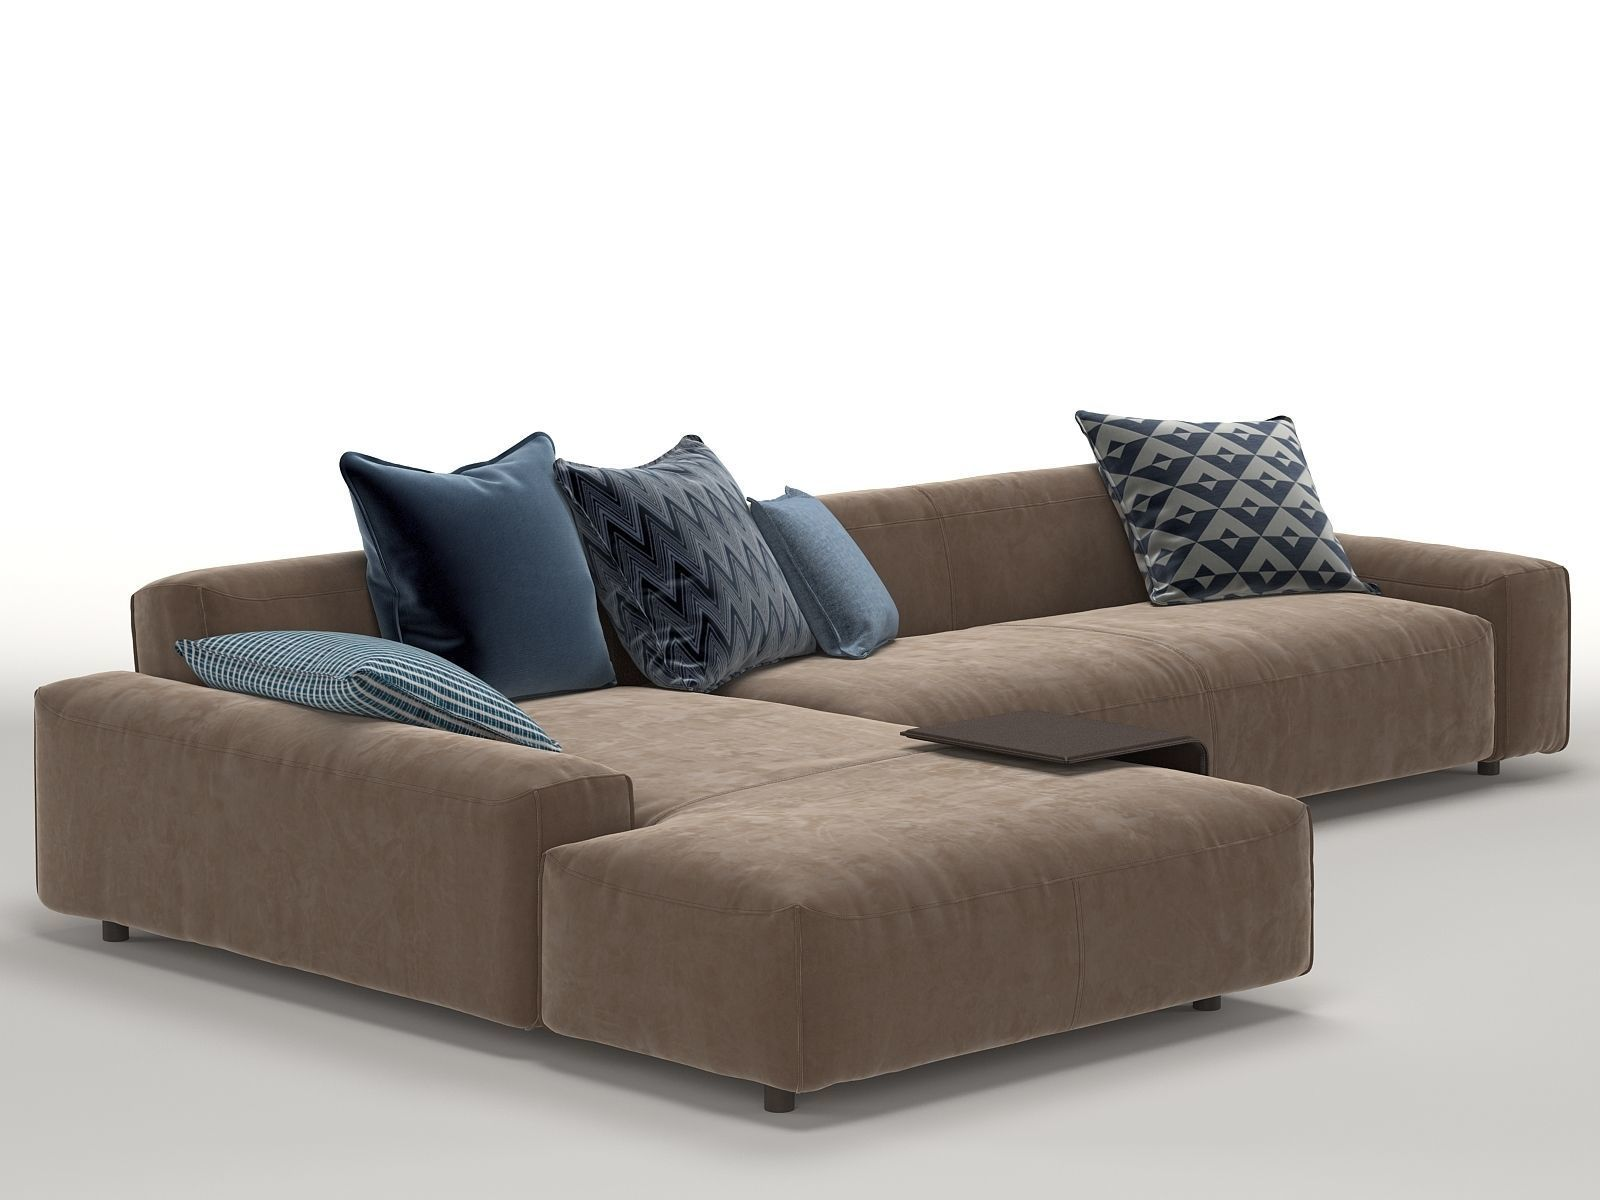 Bettsofa Rolf Benz Sofa Rolf Benz Mio 3d Model